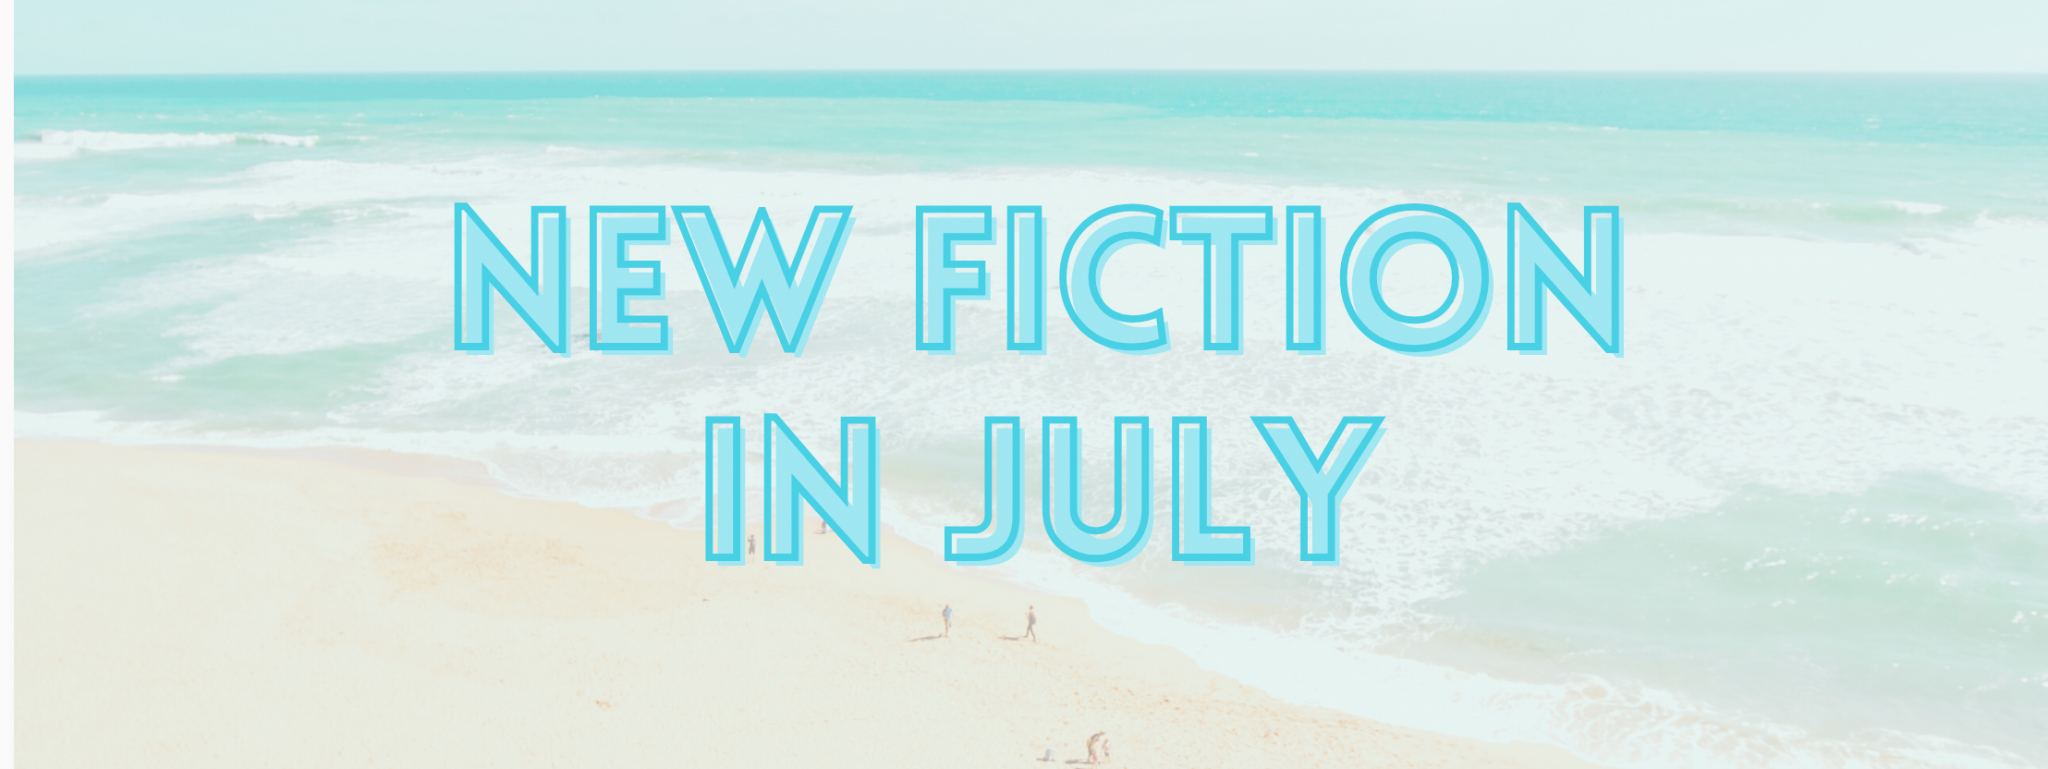 New Fiction in July